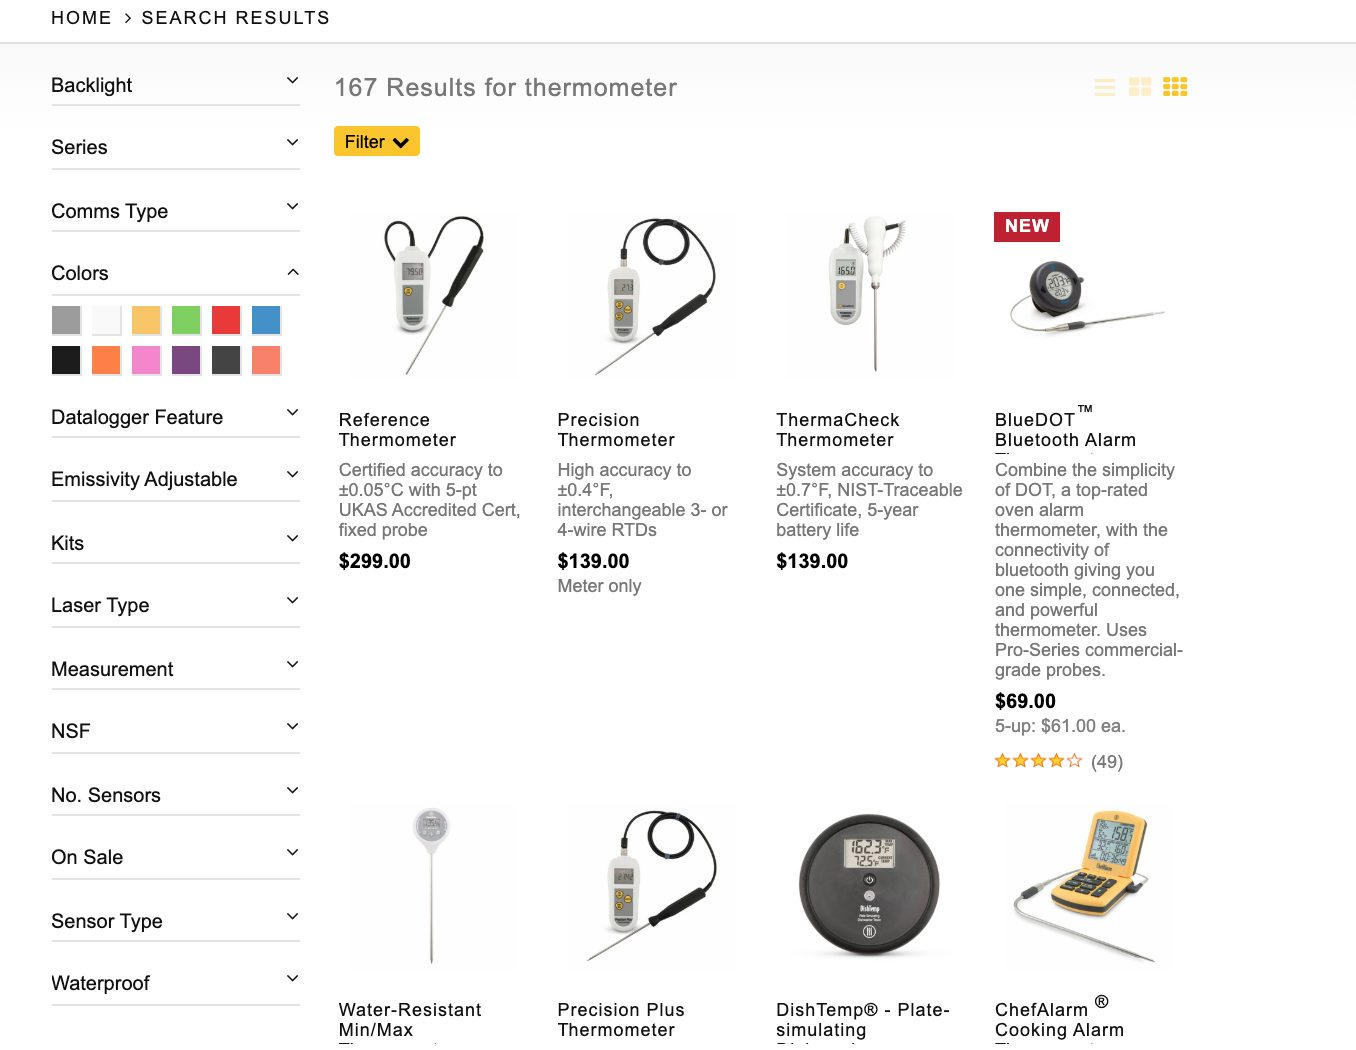 top suitecommerce merchandising features filtered search